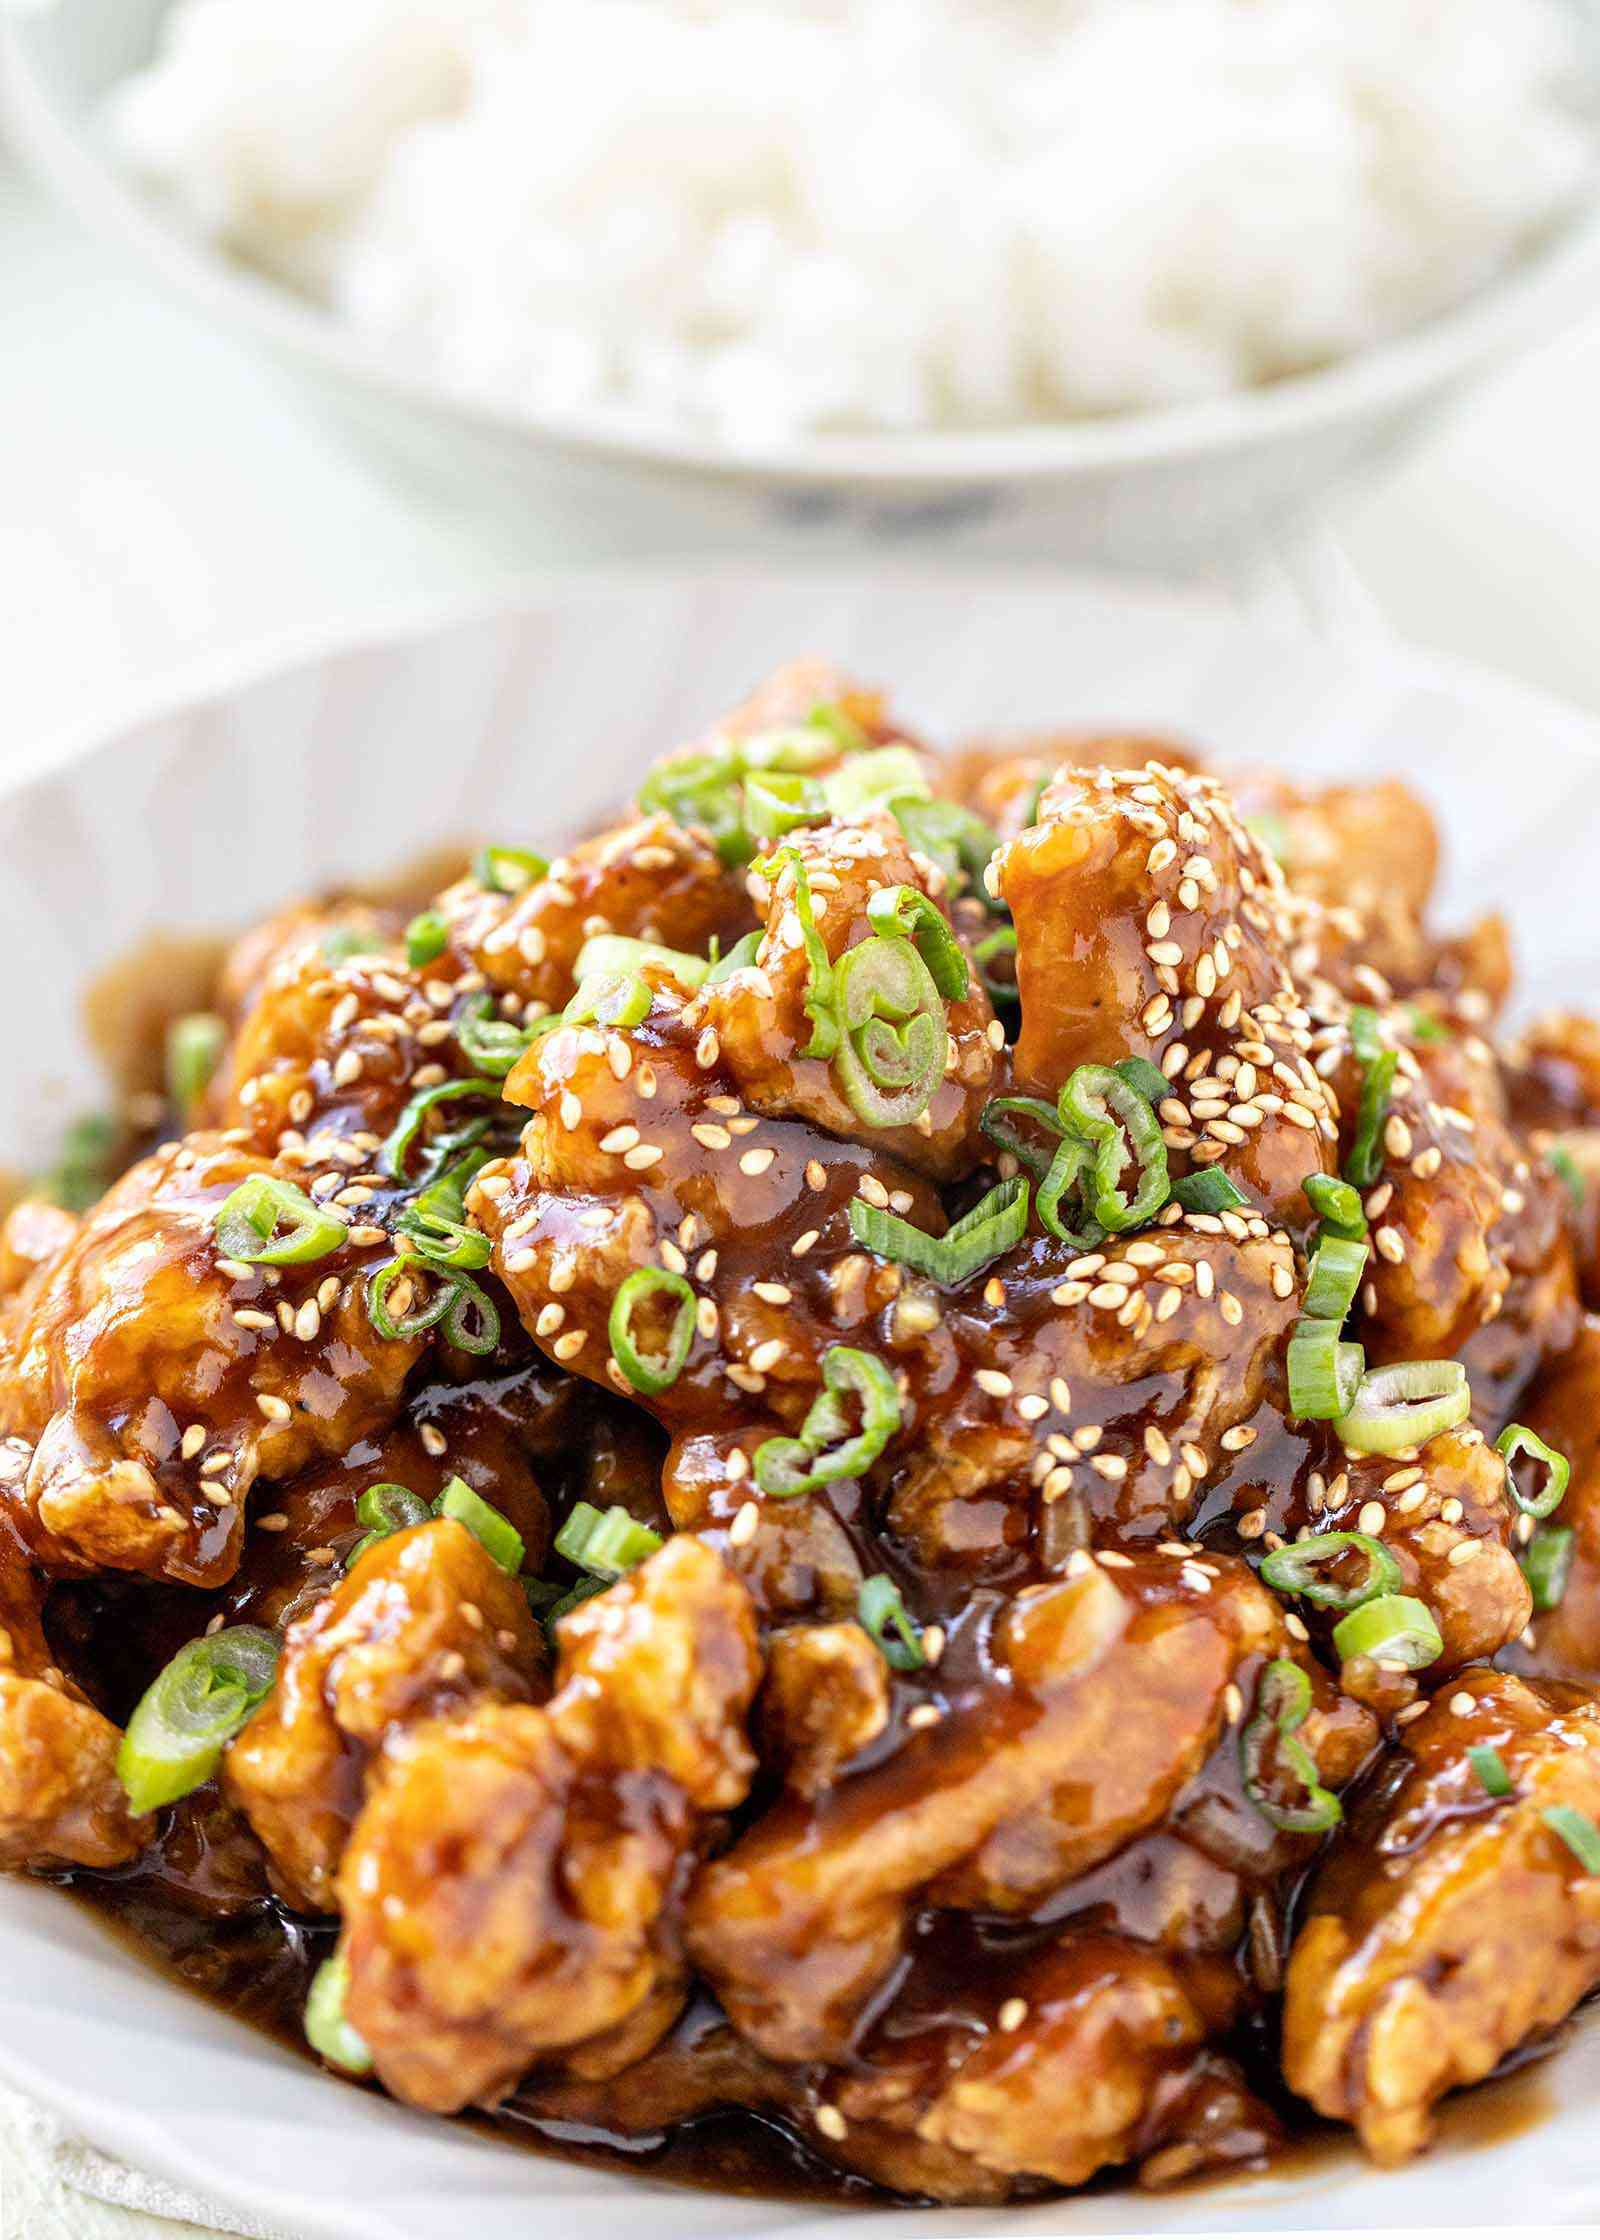 Vertical close up photo of take out chinese orange chicken topped with sesame seeds and chopped scallions. A bowl of white rice is behind the orange chicken.